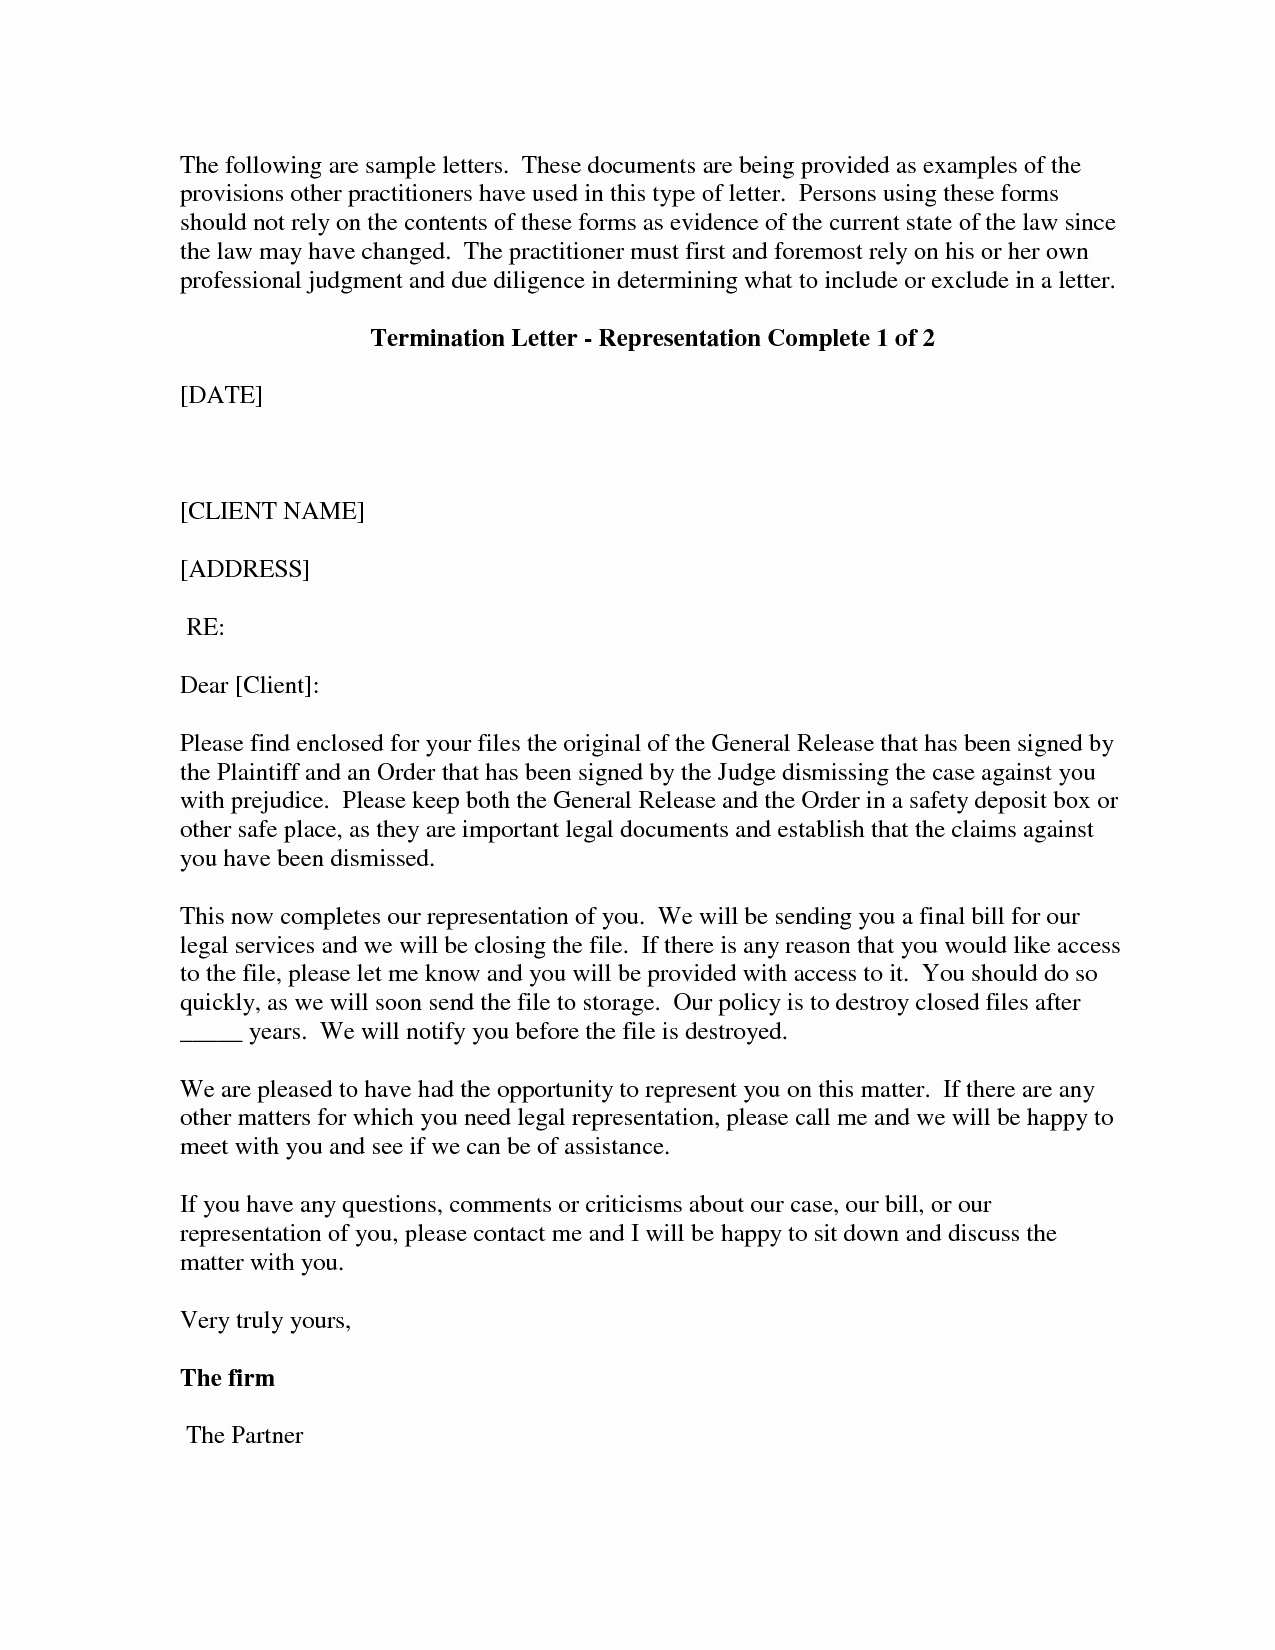 Attorney Client Letter Template Unique Letter Termination Free Printable Documents